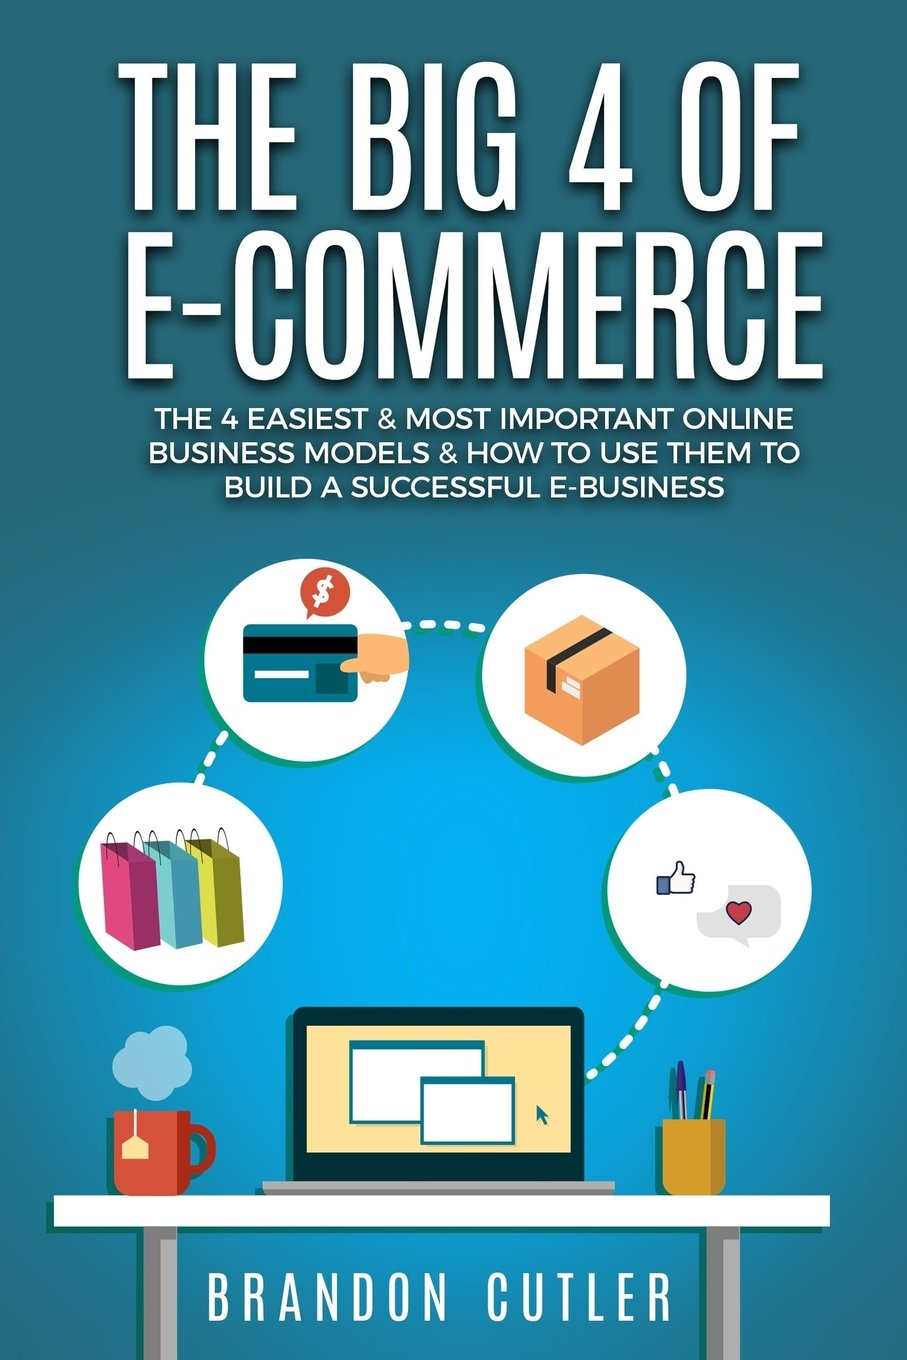 The Big 4 of E-Commerce: The 4 Easiest & Most Important Online Business Models & How to Use Them to Build a Successful e-Business (Dropshipping, Affiliate Marketing, Blogging, Information Products) ebook